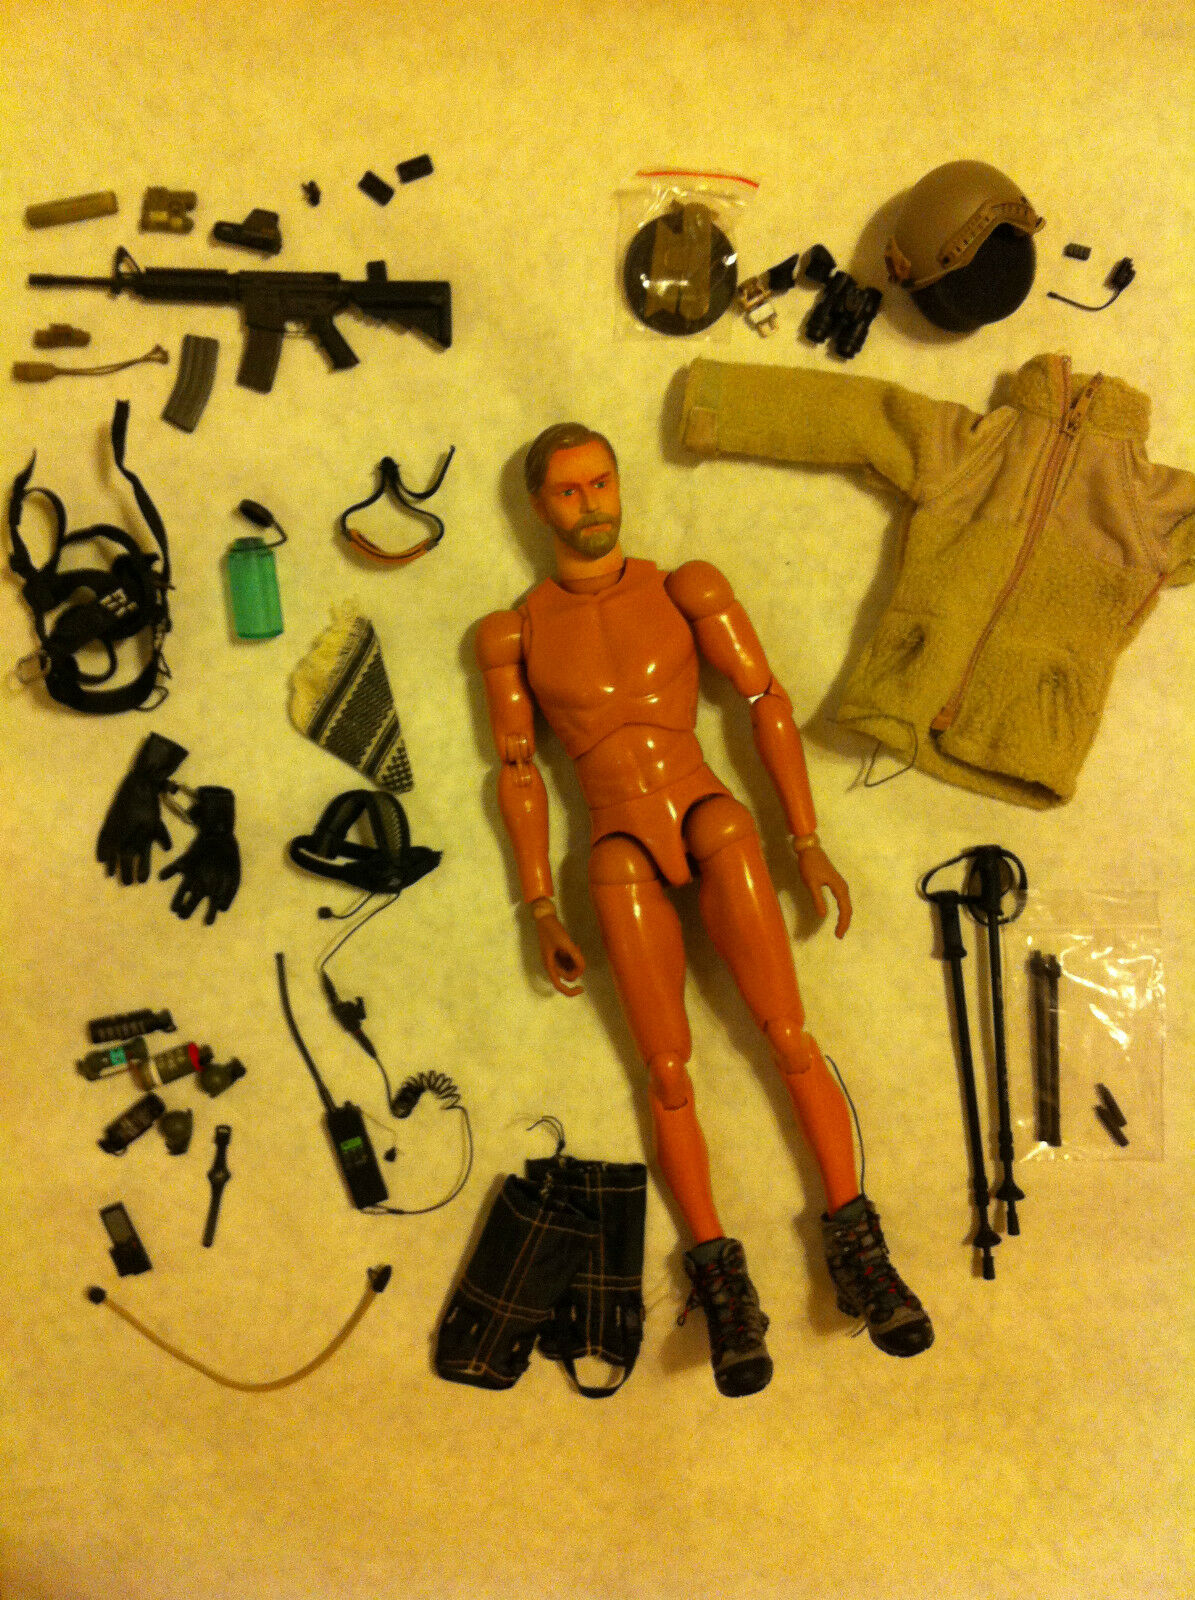 1 6 Hot TOYS Mountain Head Body Boots Rifle LOT NEW